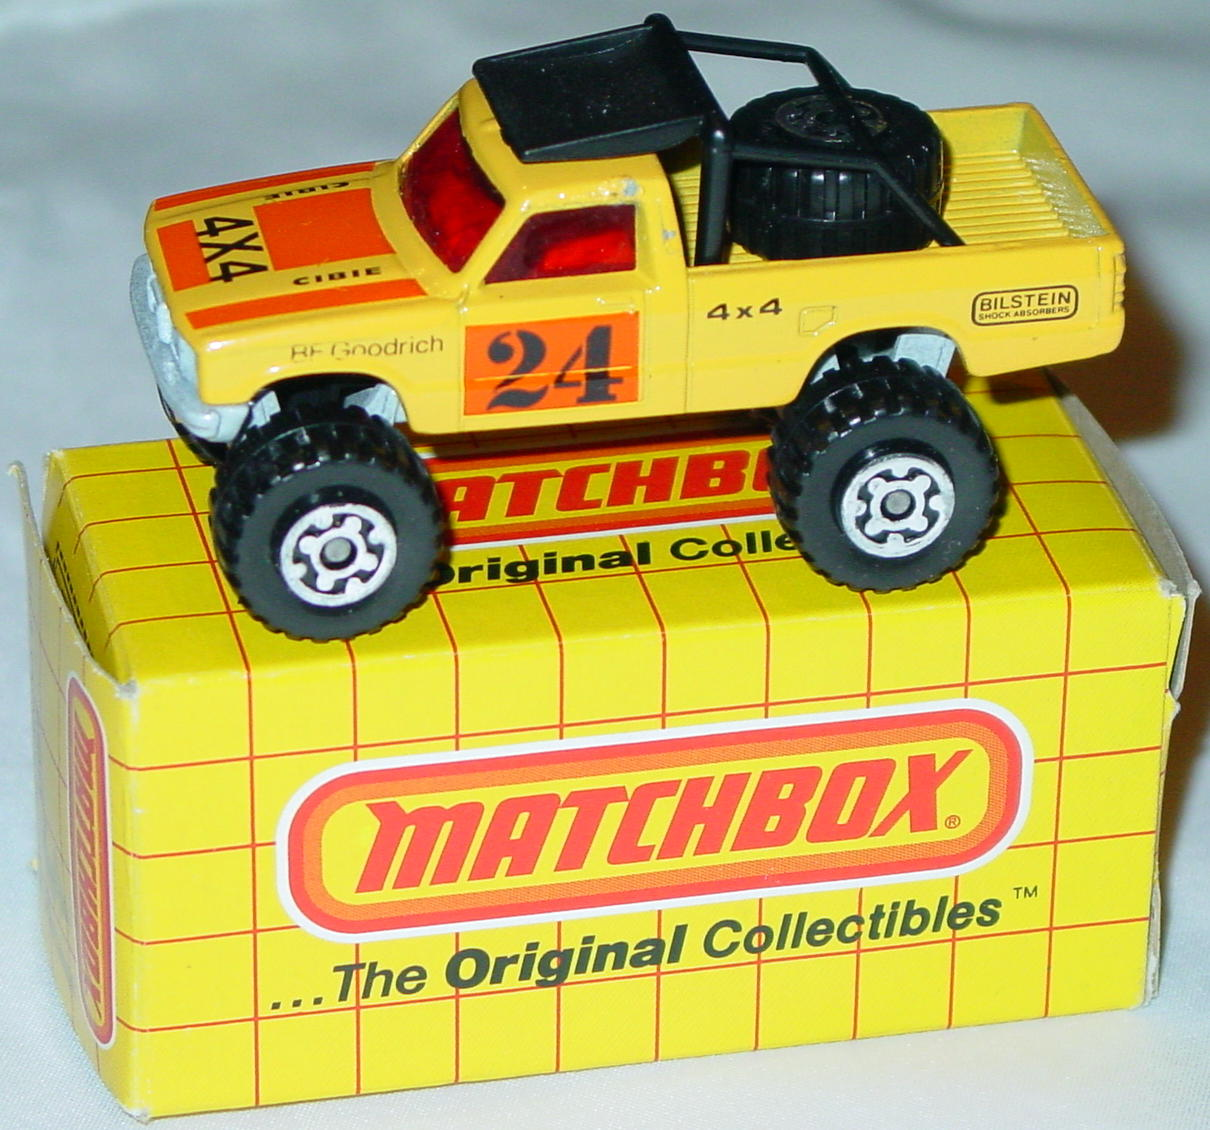 Offshore SuperFast 13 D 8 - 4x4 Truck yellow pearly-silver base BF Goodrich Made in Macau yellow box